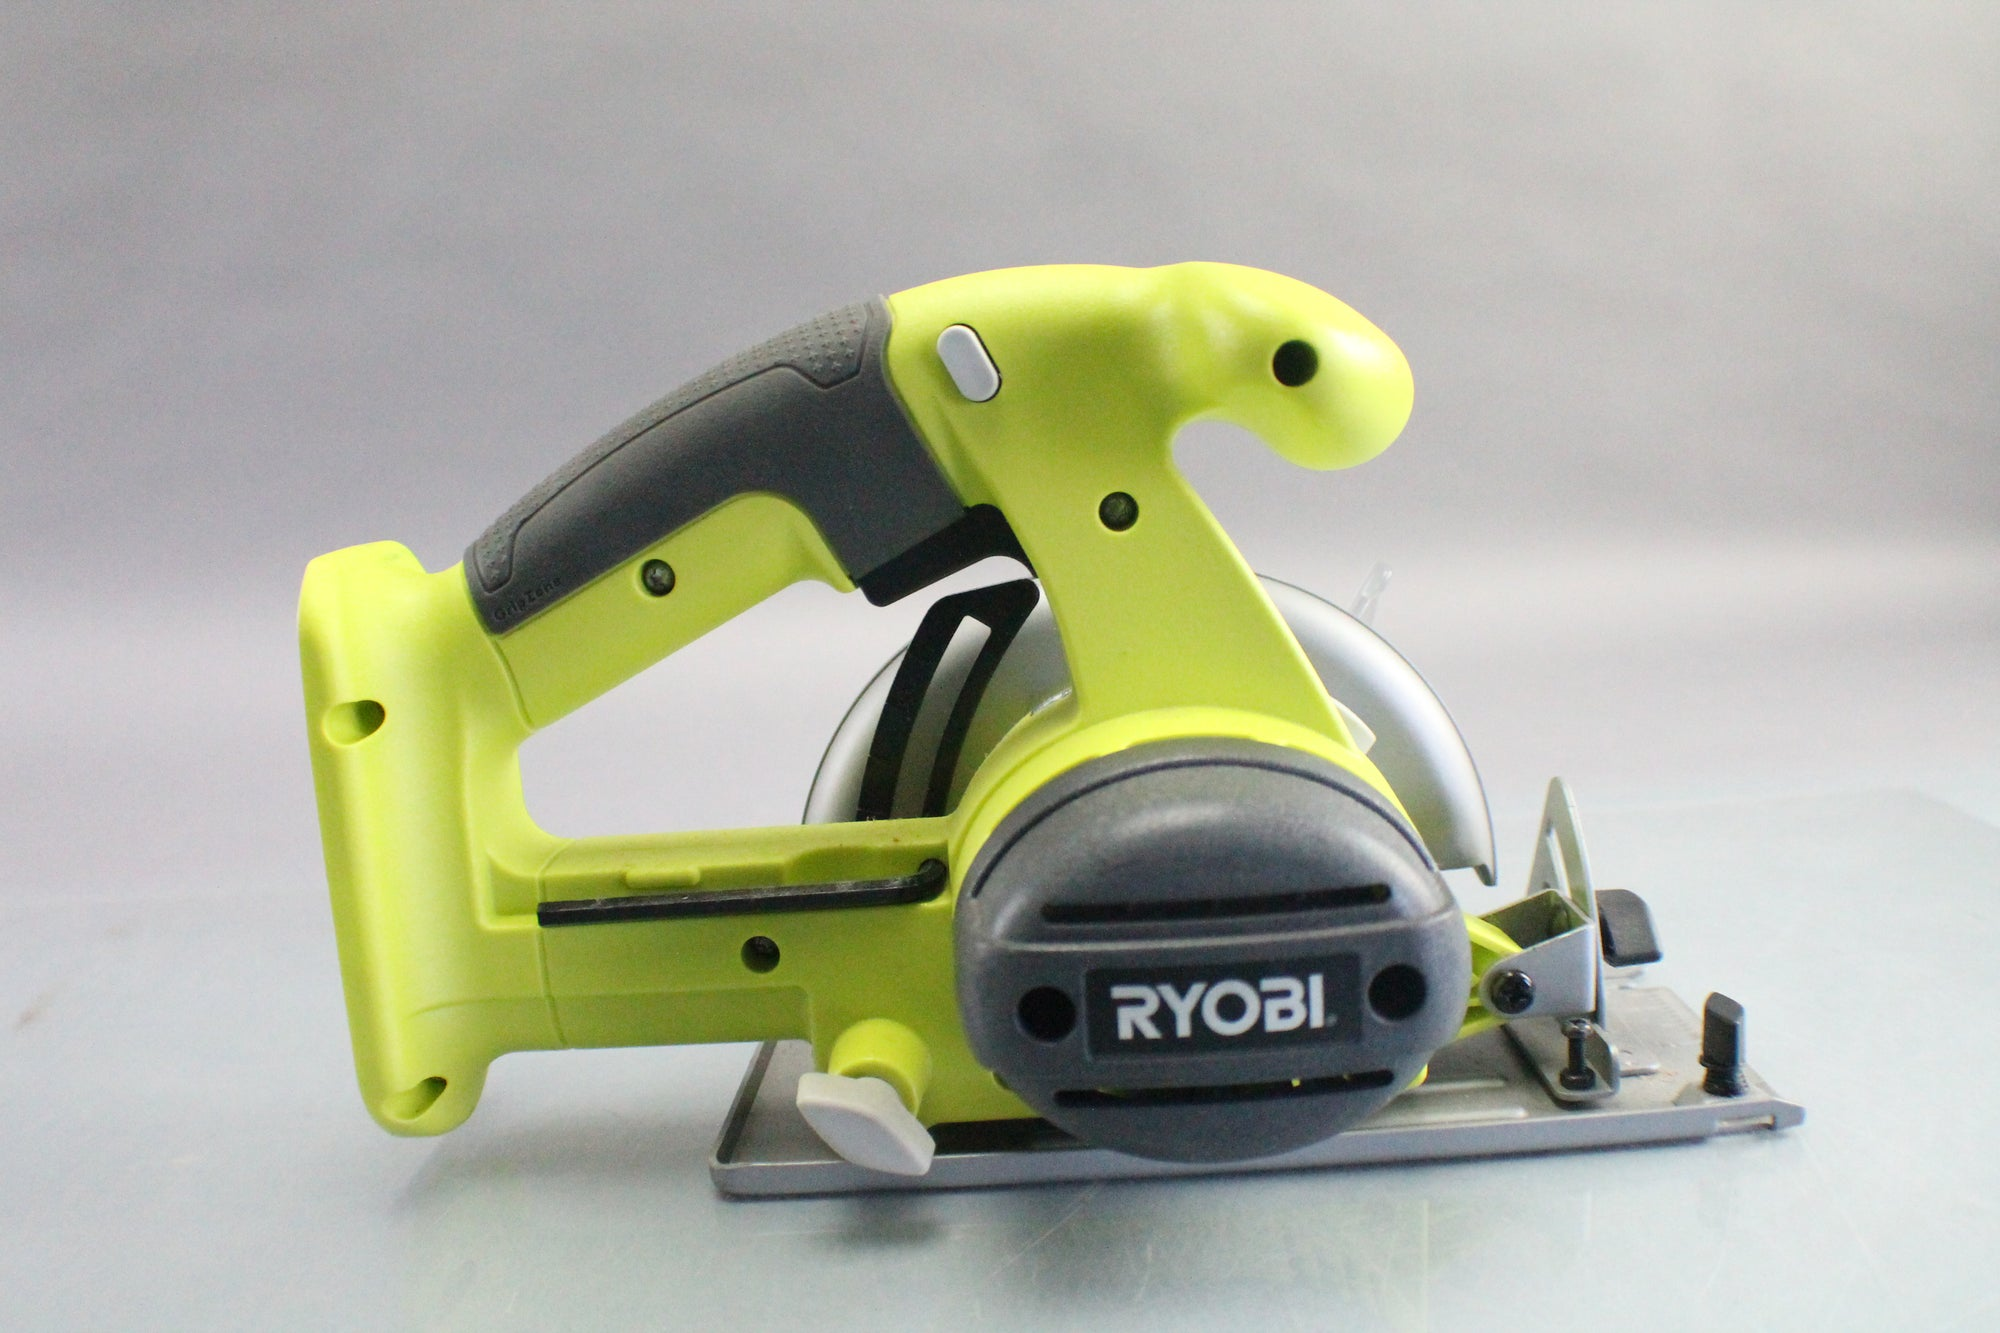 Ryobi One+ P501G 18V Lithium Ion Cordless with 5-1/2 Inch Circular Saw